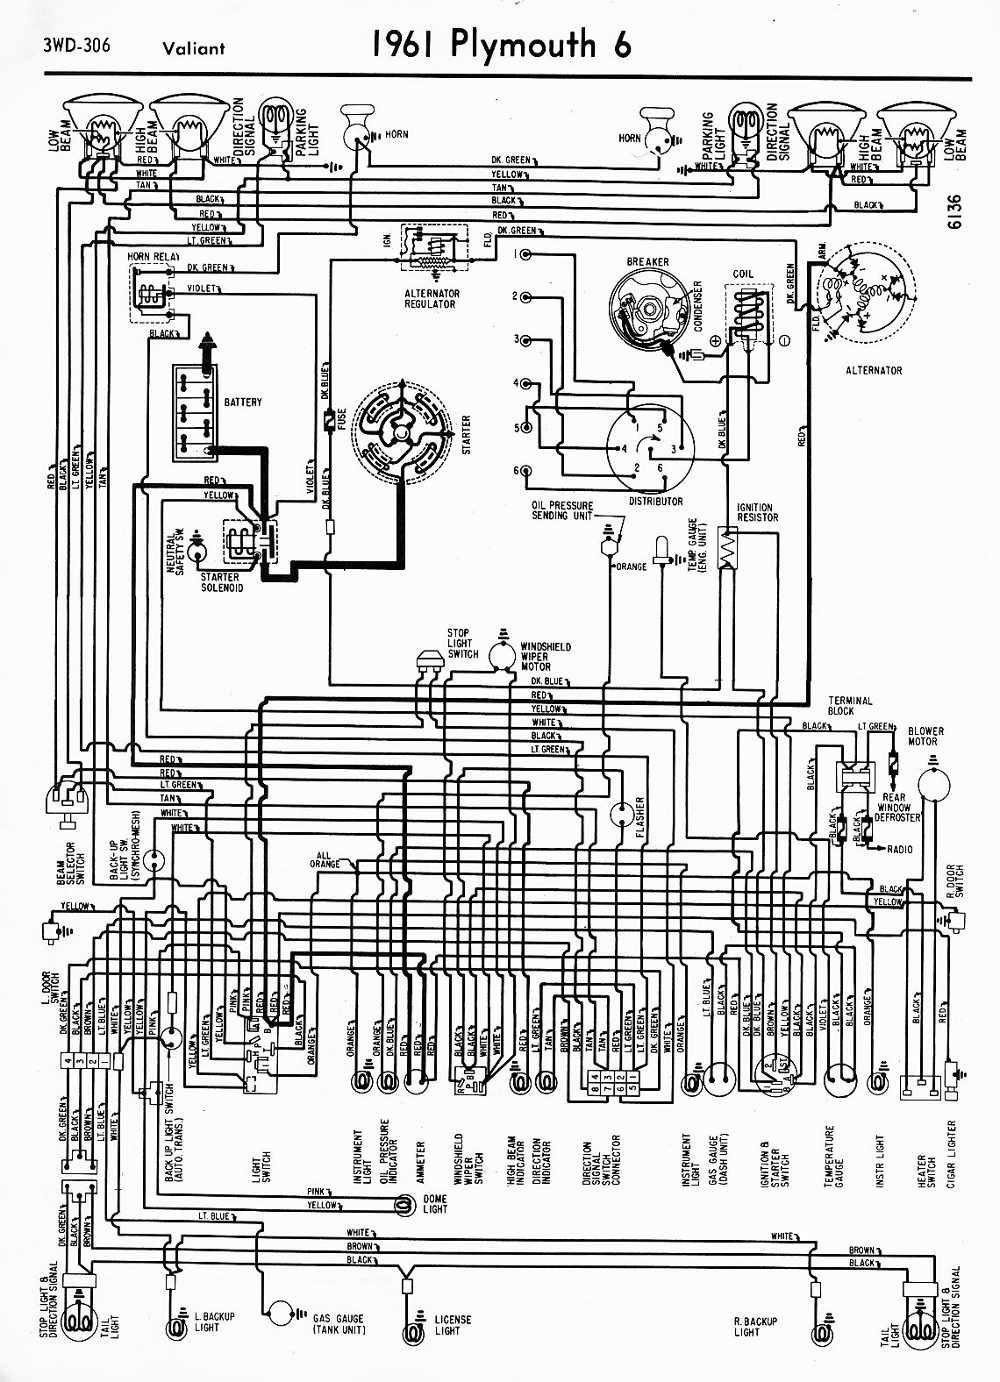 1954 Mopar Wiring Diagrams Free Diagram For You Voltage Regulator Plymouth Belvedere 38 Ignition Switch